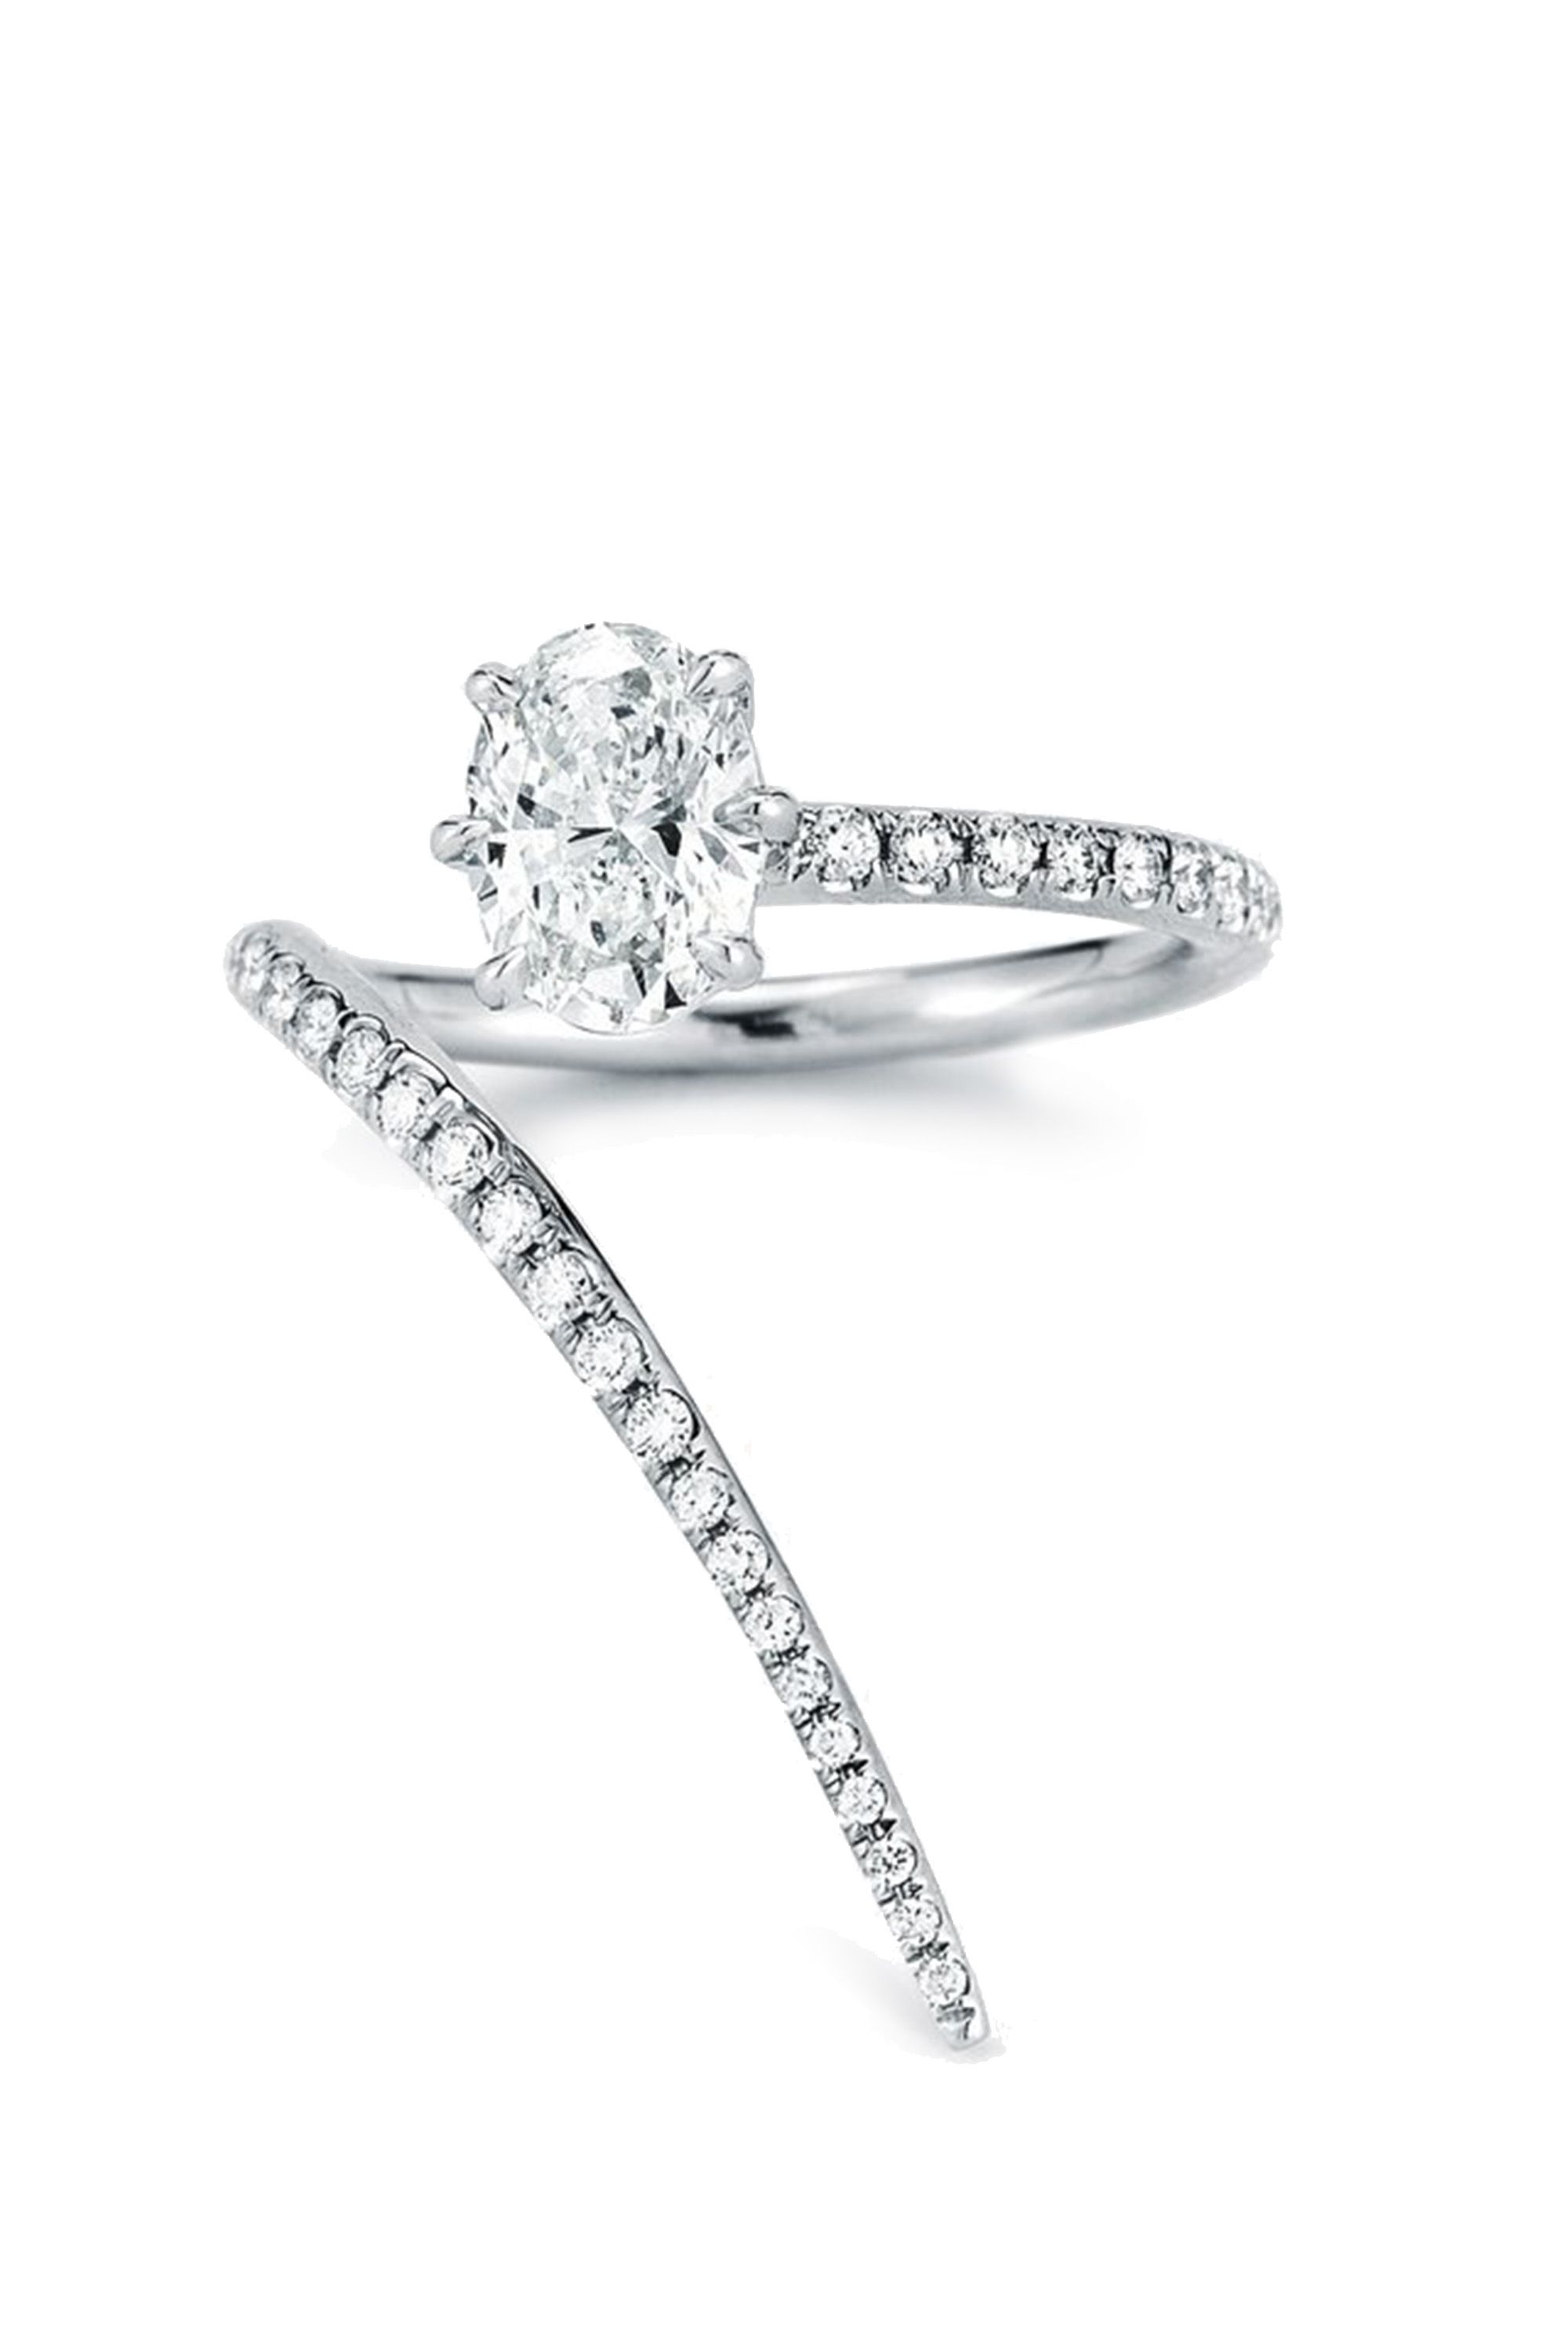 41 Unique Engagement Rings Beautiful Non Diamond And Unusual